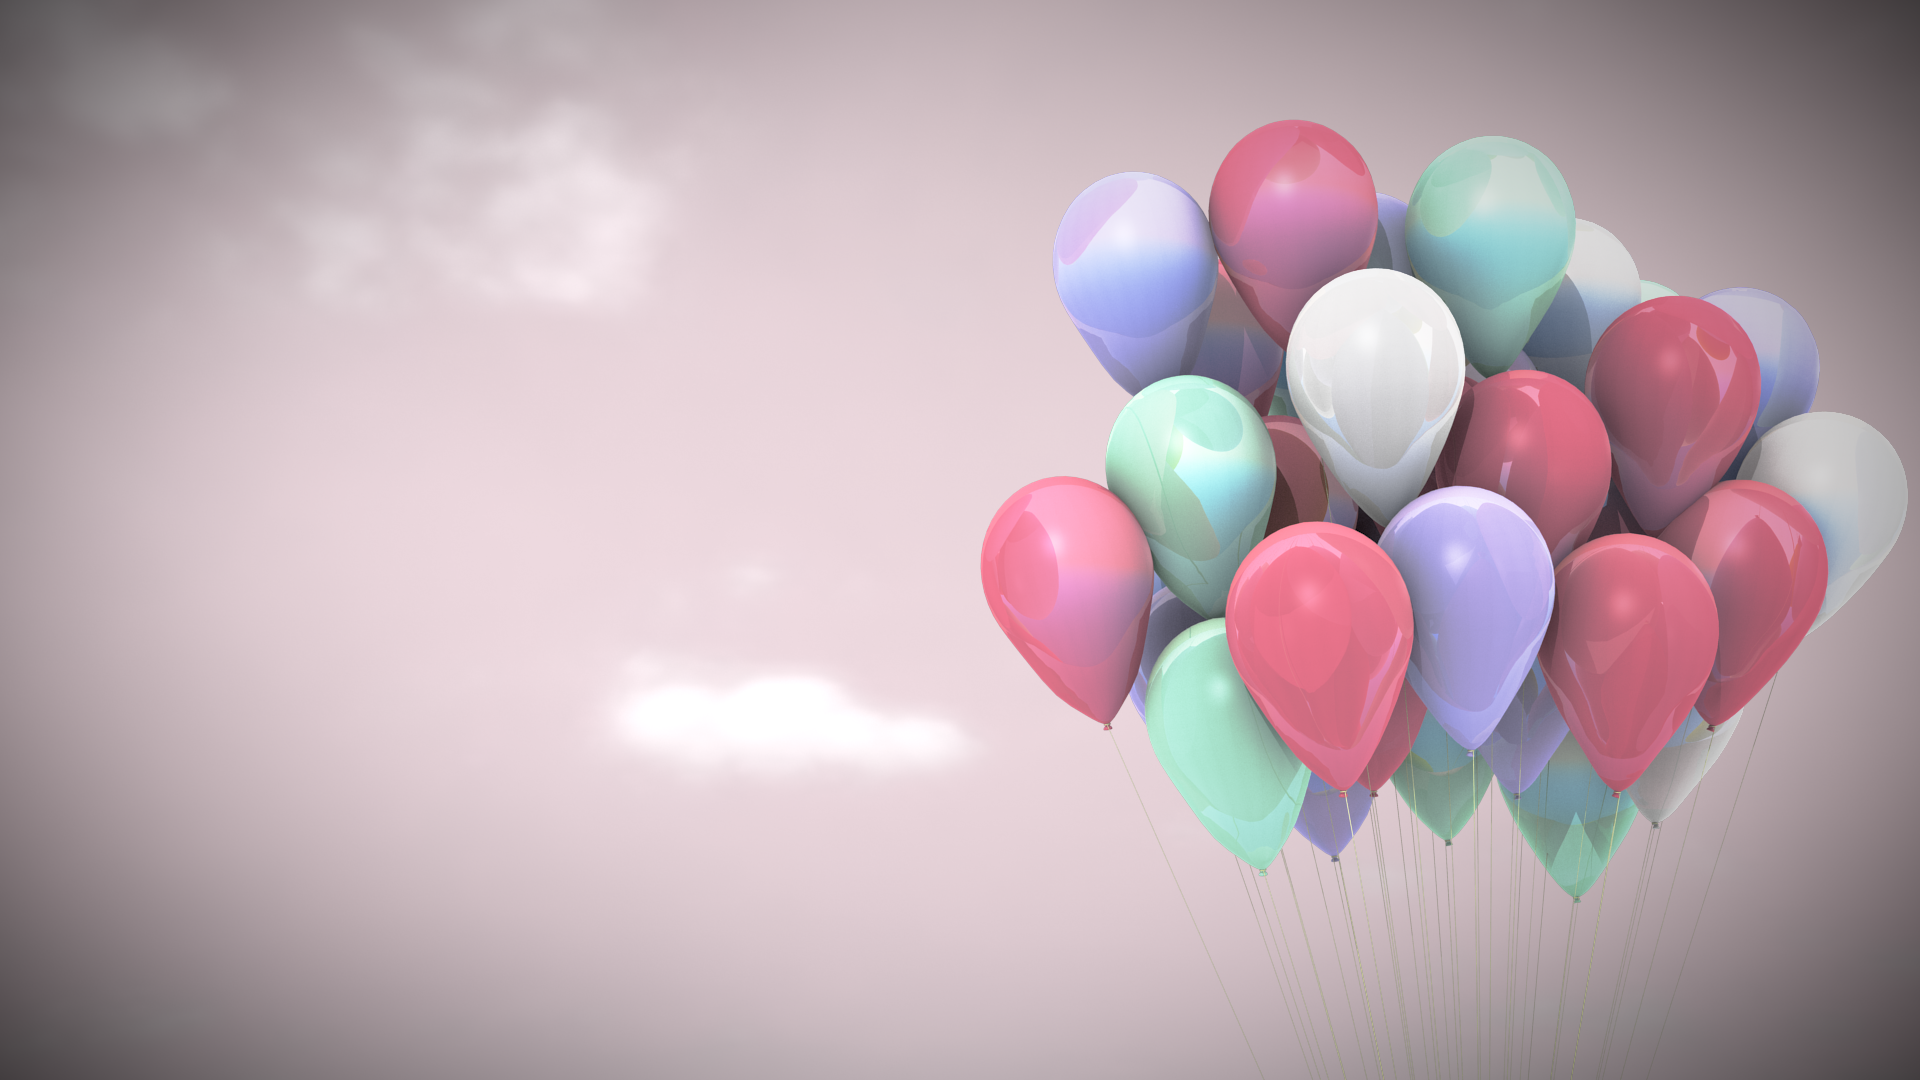 balloons_in_a_pink_sky_by_flyingrae-d3hy3s7